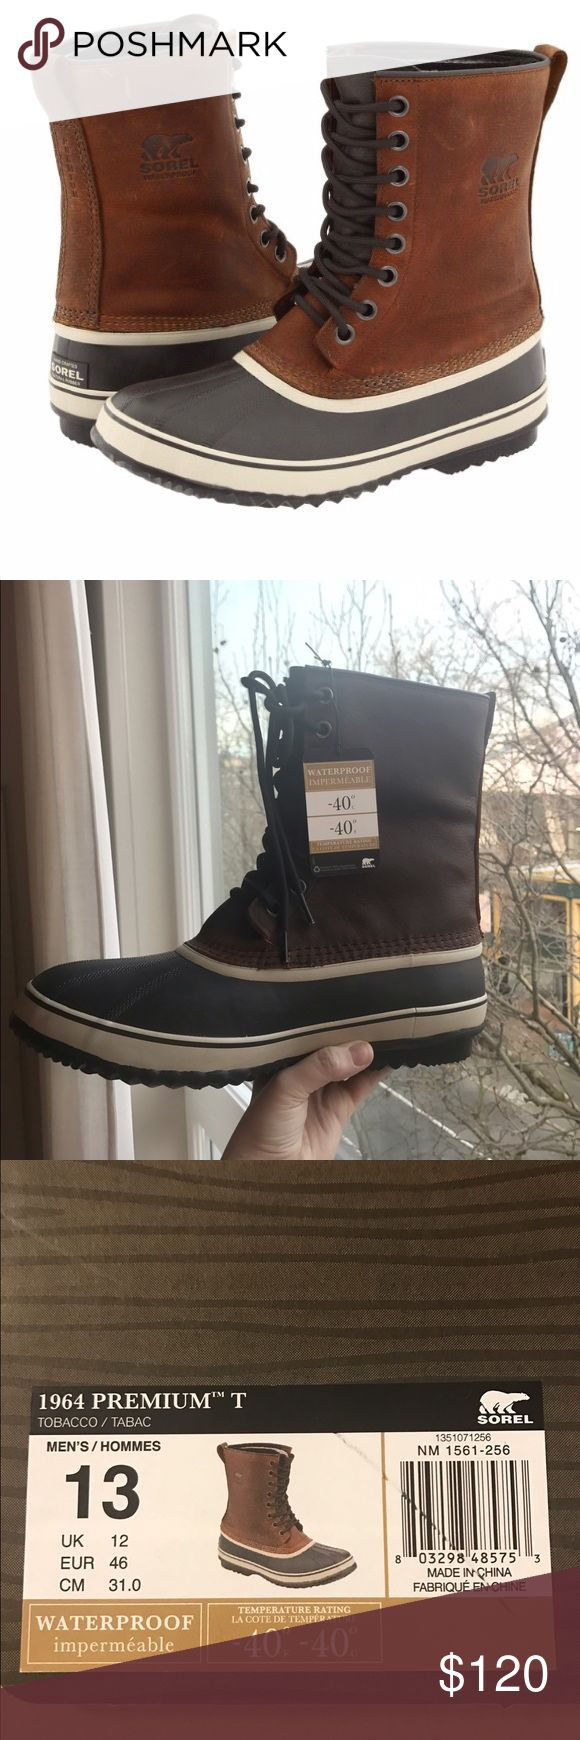 Sorel Boots - Men's, Waterproof Brand-new men's Sorel boots. Never worn! 1964 Premium T style. Waterproof and great for snow. Sorel Shoes Boots